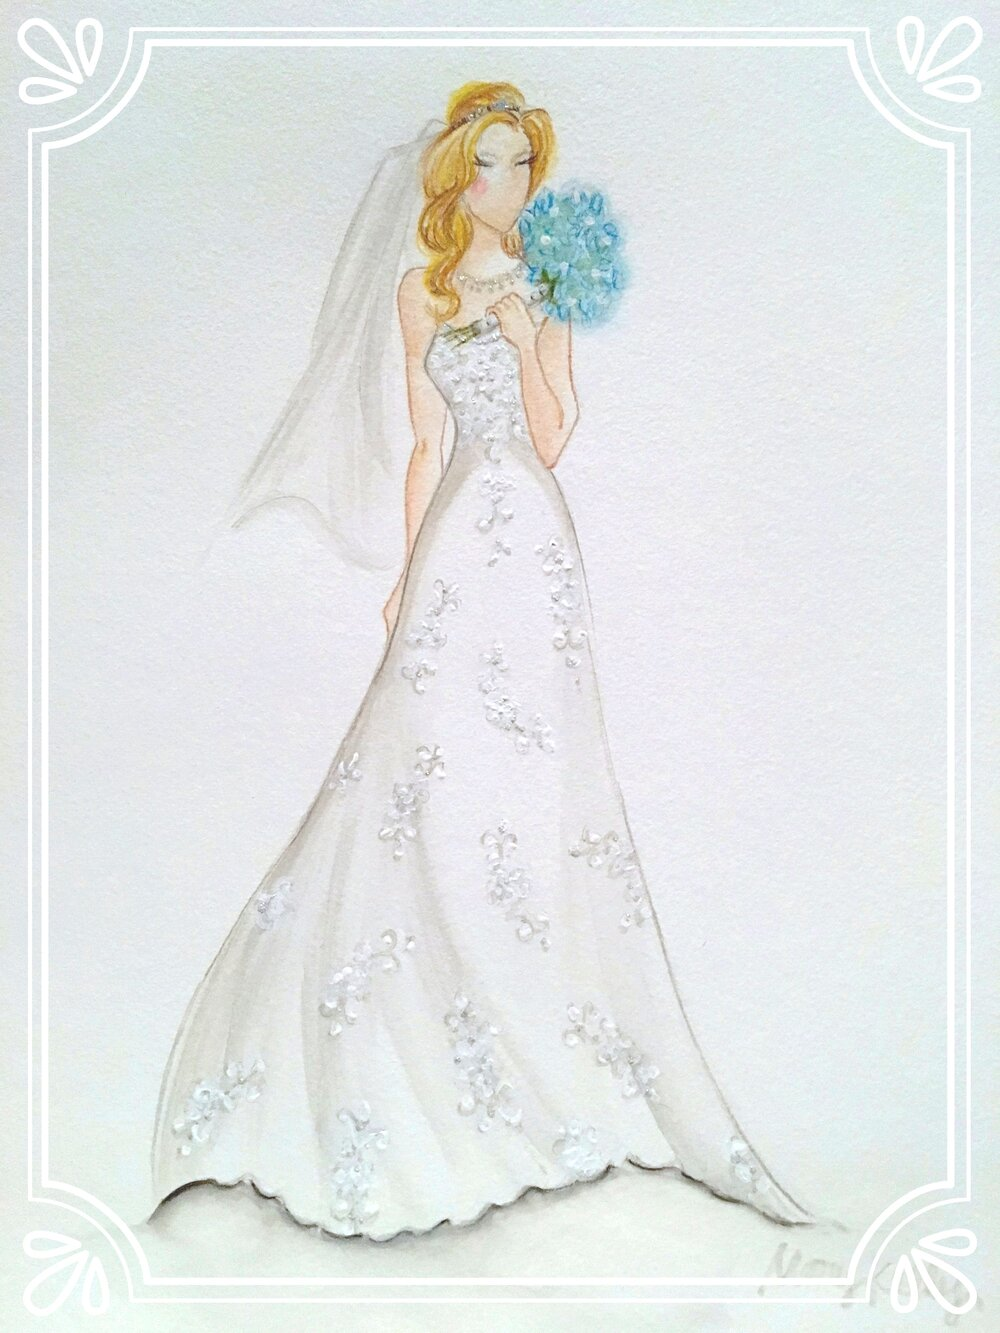 Mary's gown with hydrangea bouquet